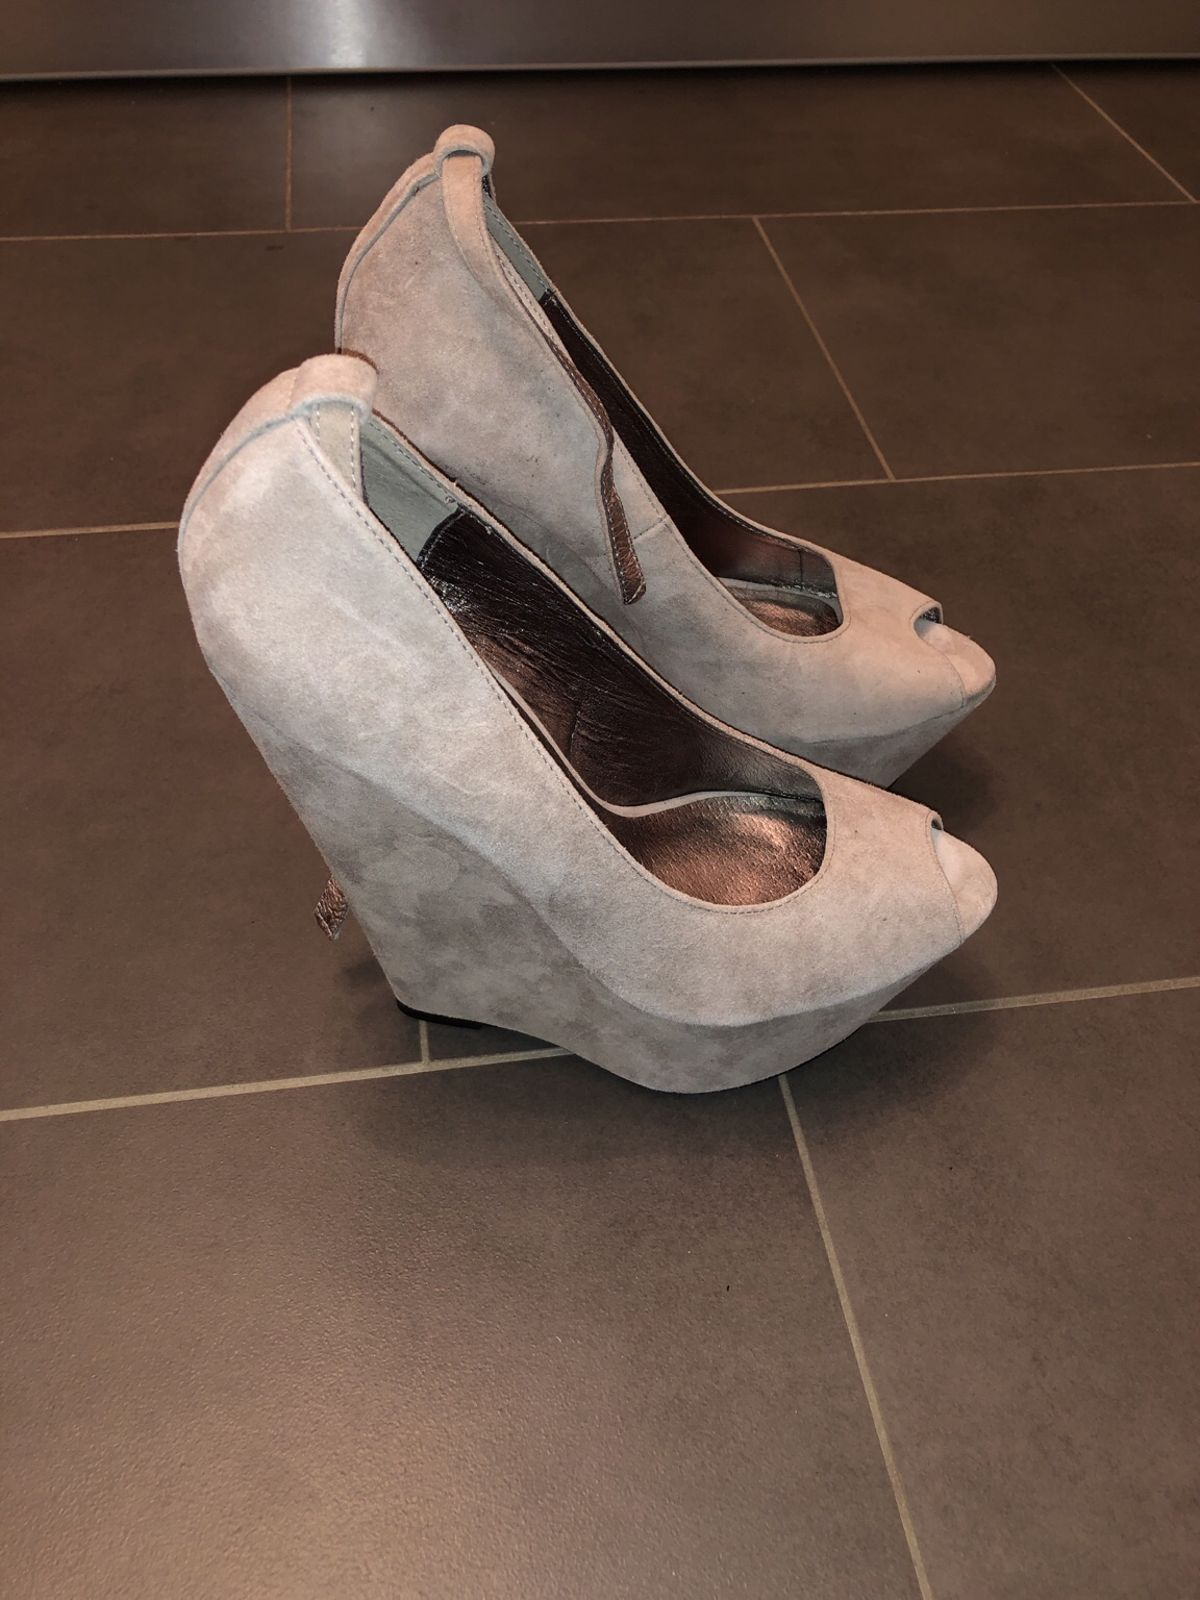 e02cb06870 Hot Heels High Heels, grau in 9300 Wittenbach for CHF 100.00 for sale -  Shpock